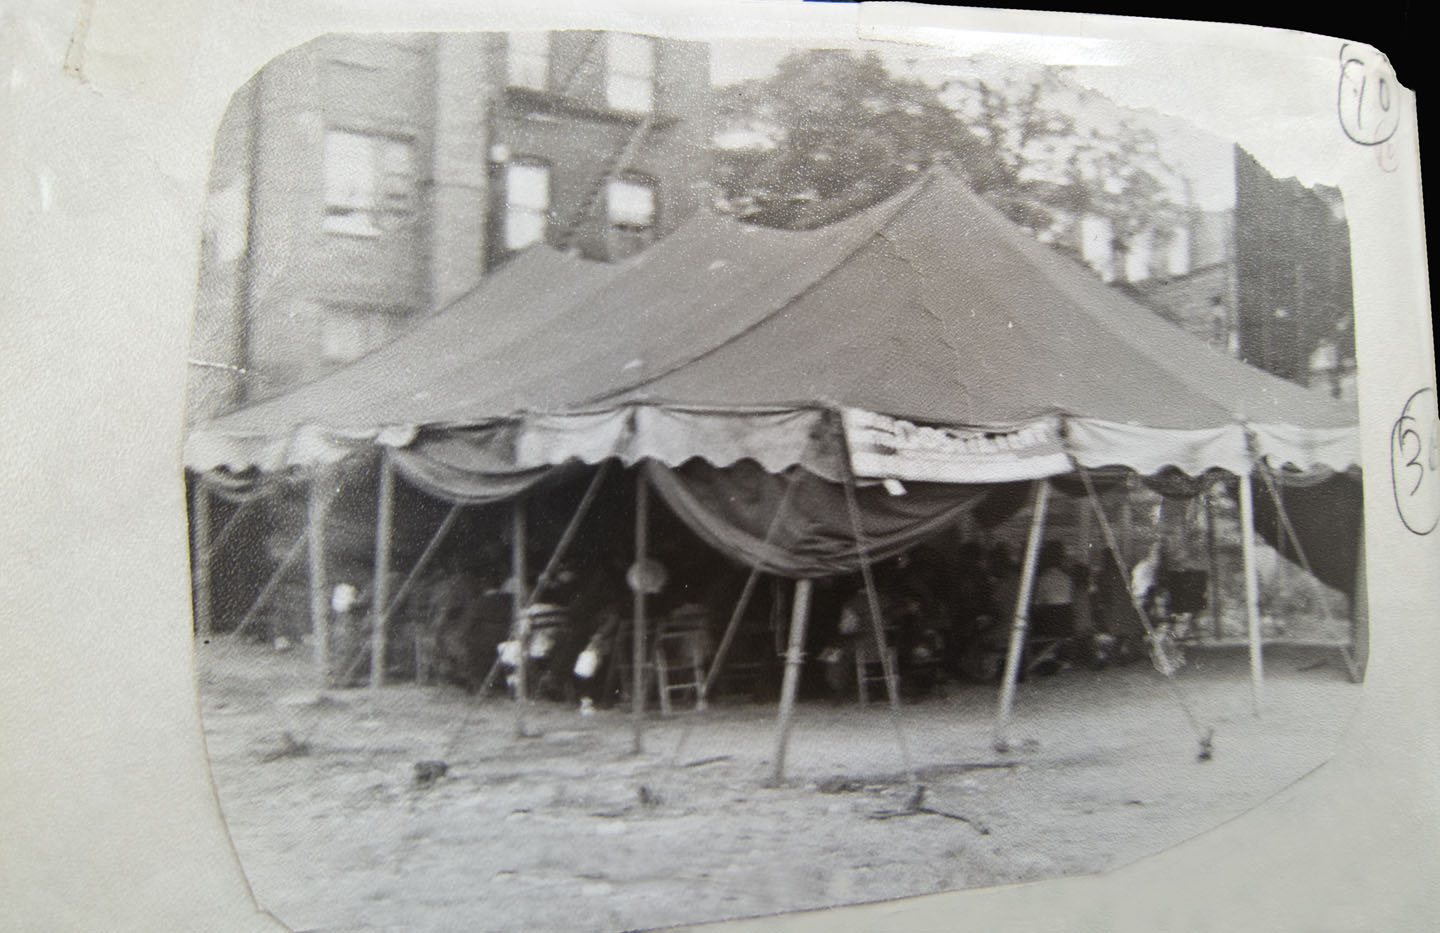 Tent Revival by Williamsburg Church of God in 1950s. Courtesy of church.